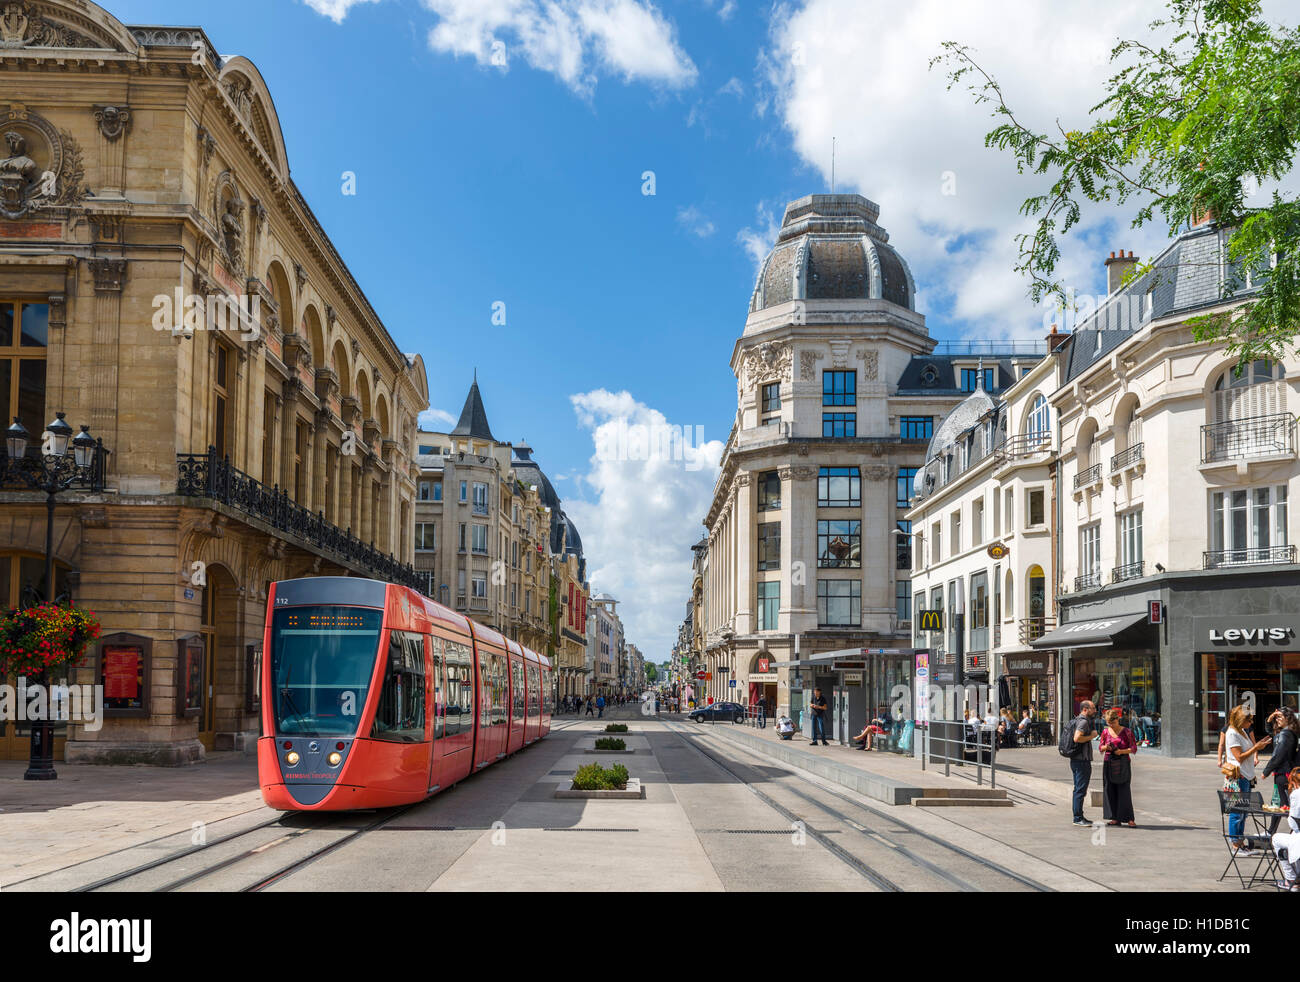 Tram and shops in the city centre place myron herrick reims france stock photo 121381272 alamy - Piscine reims ...